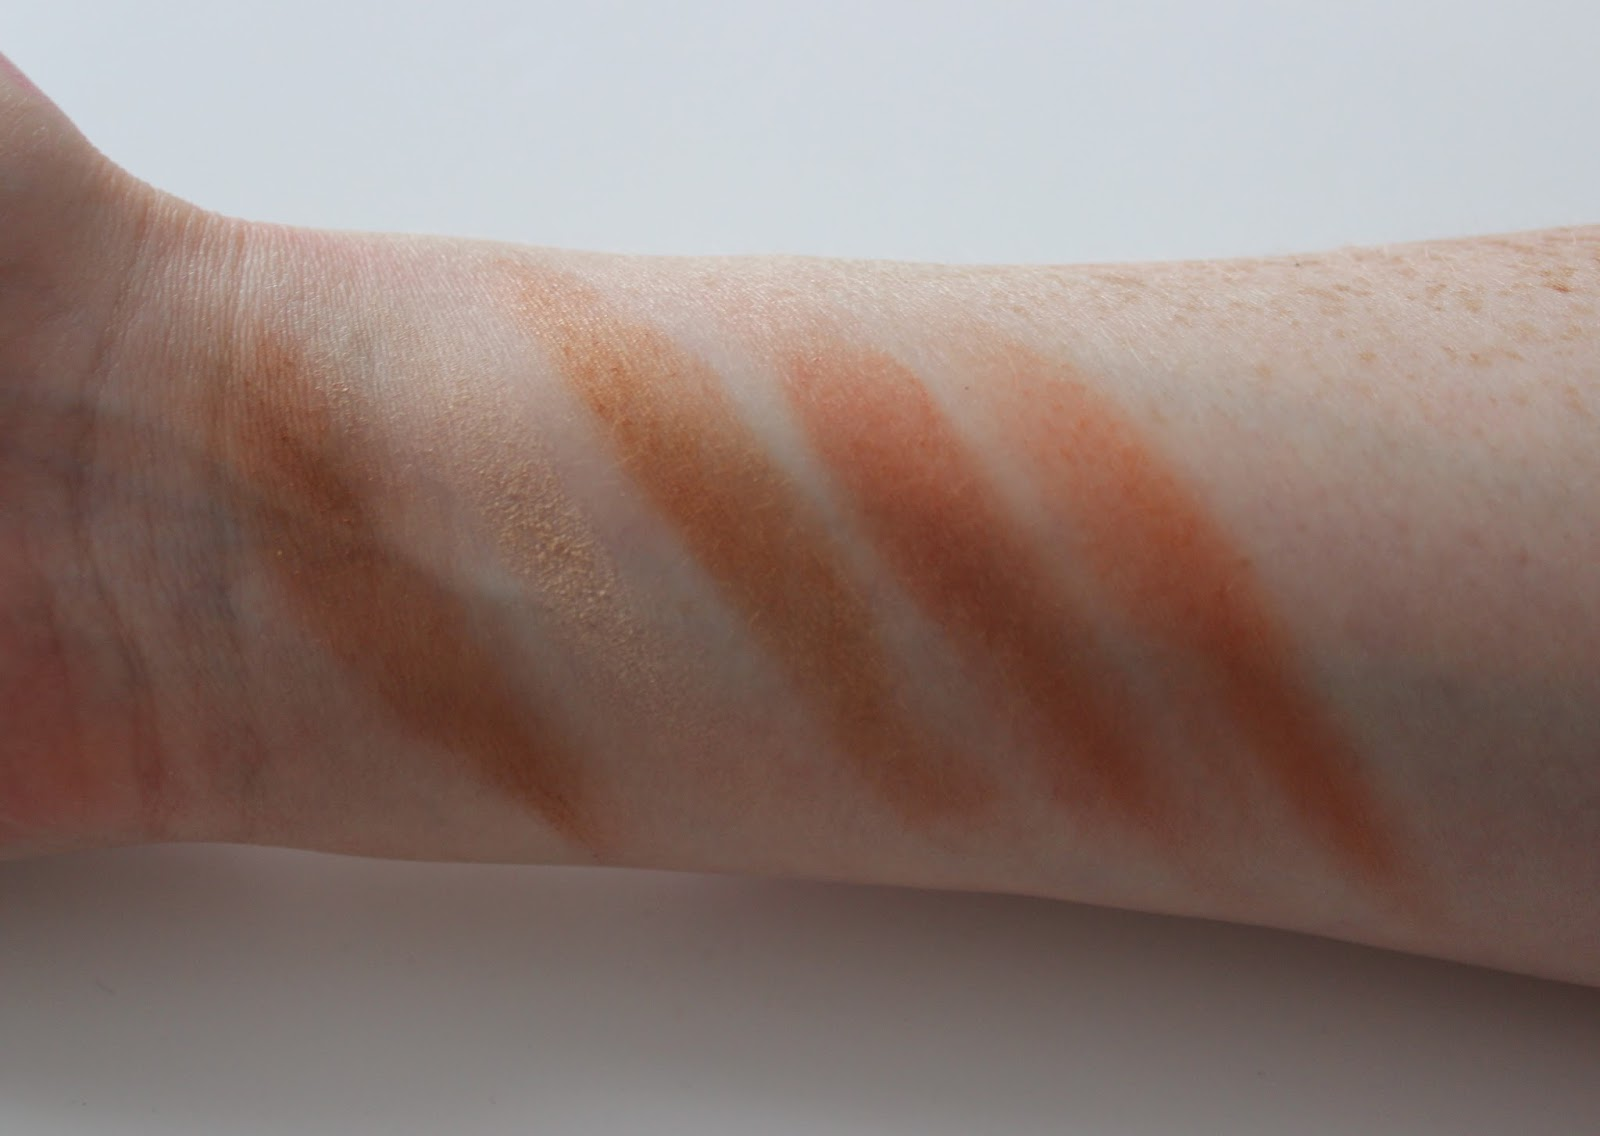 Bourjois bronzer swatches